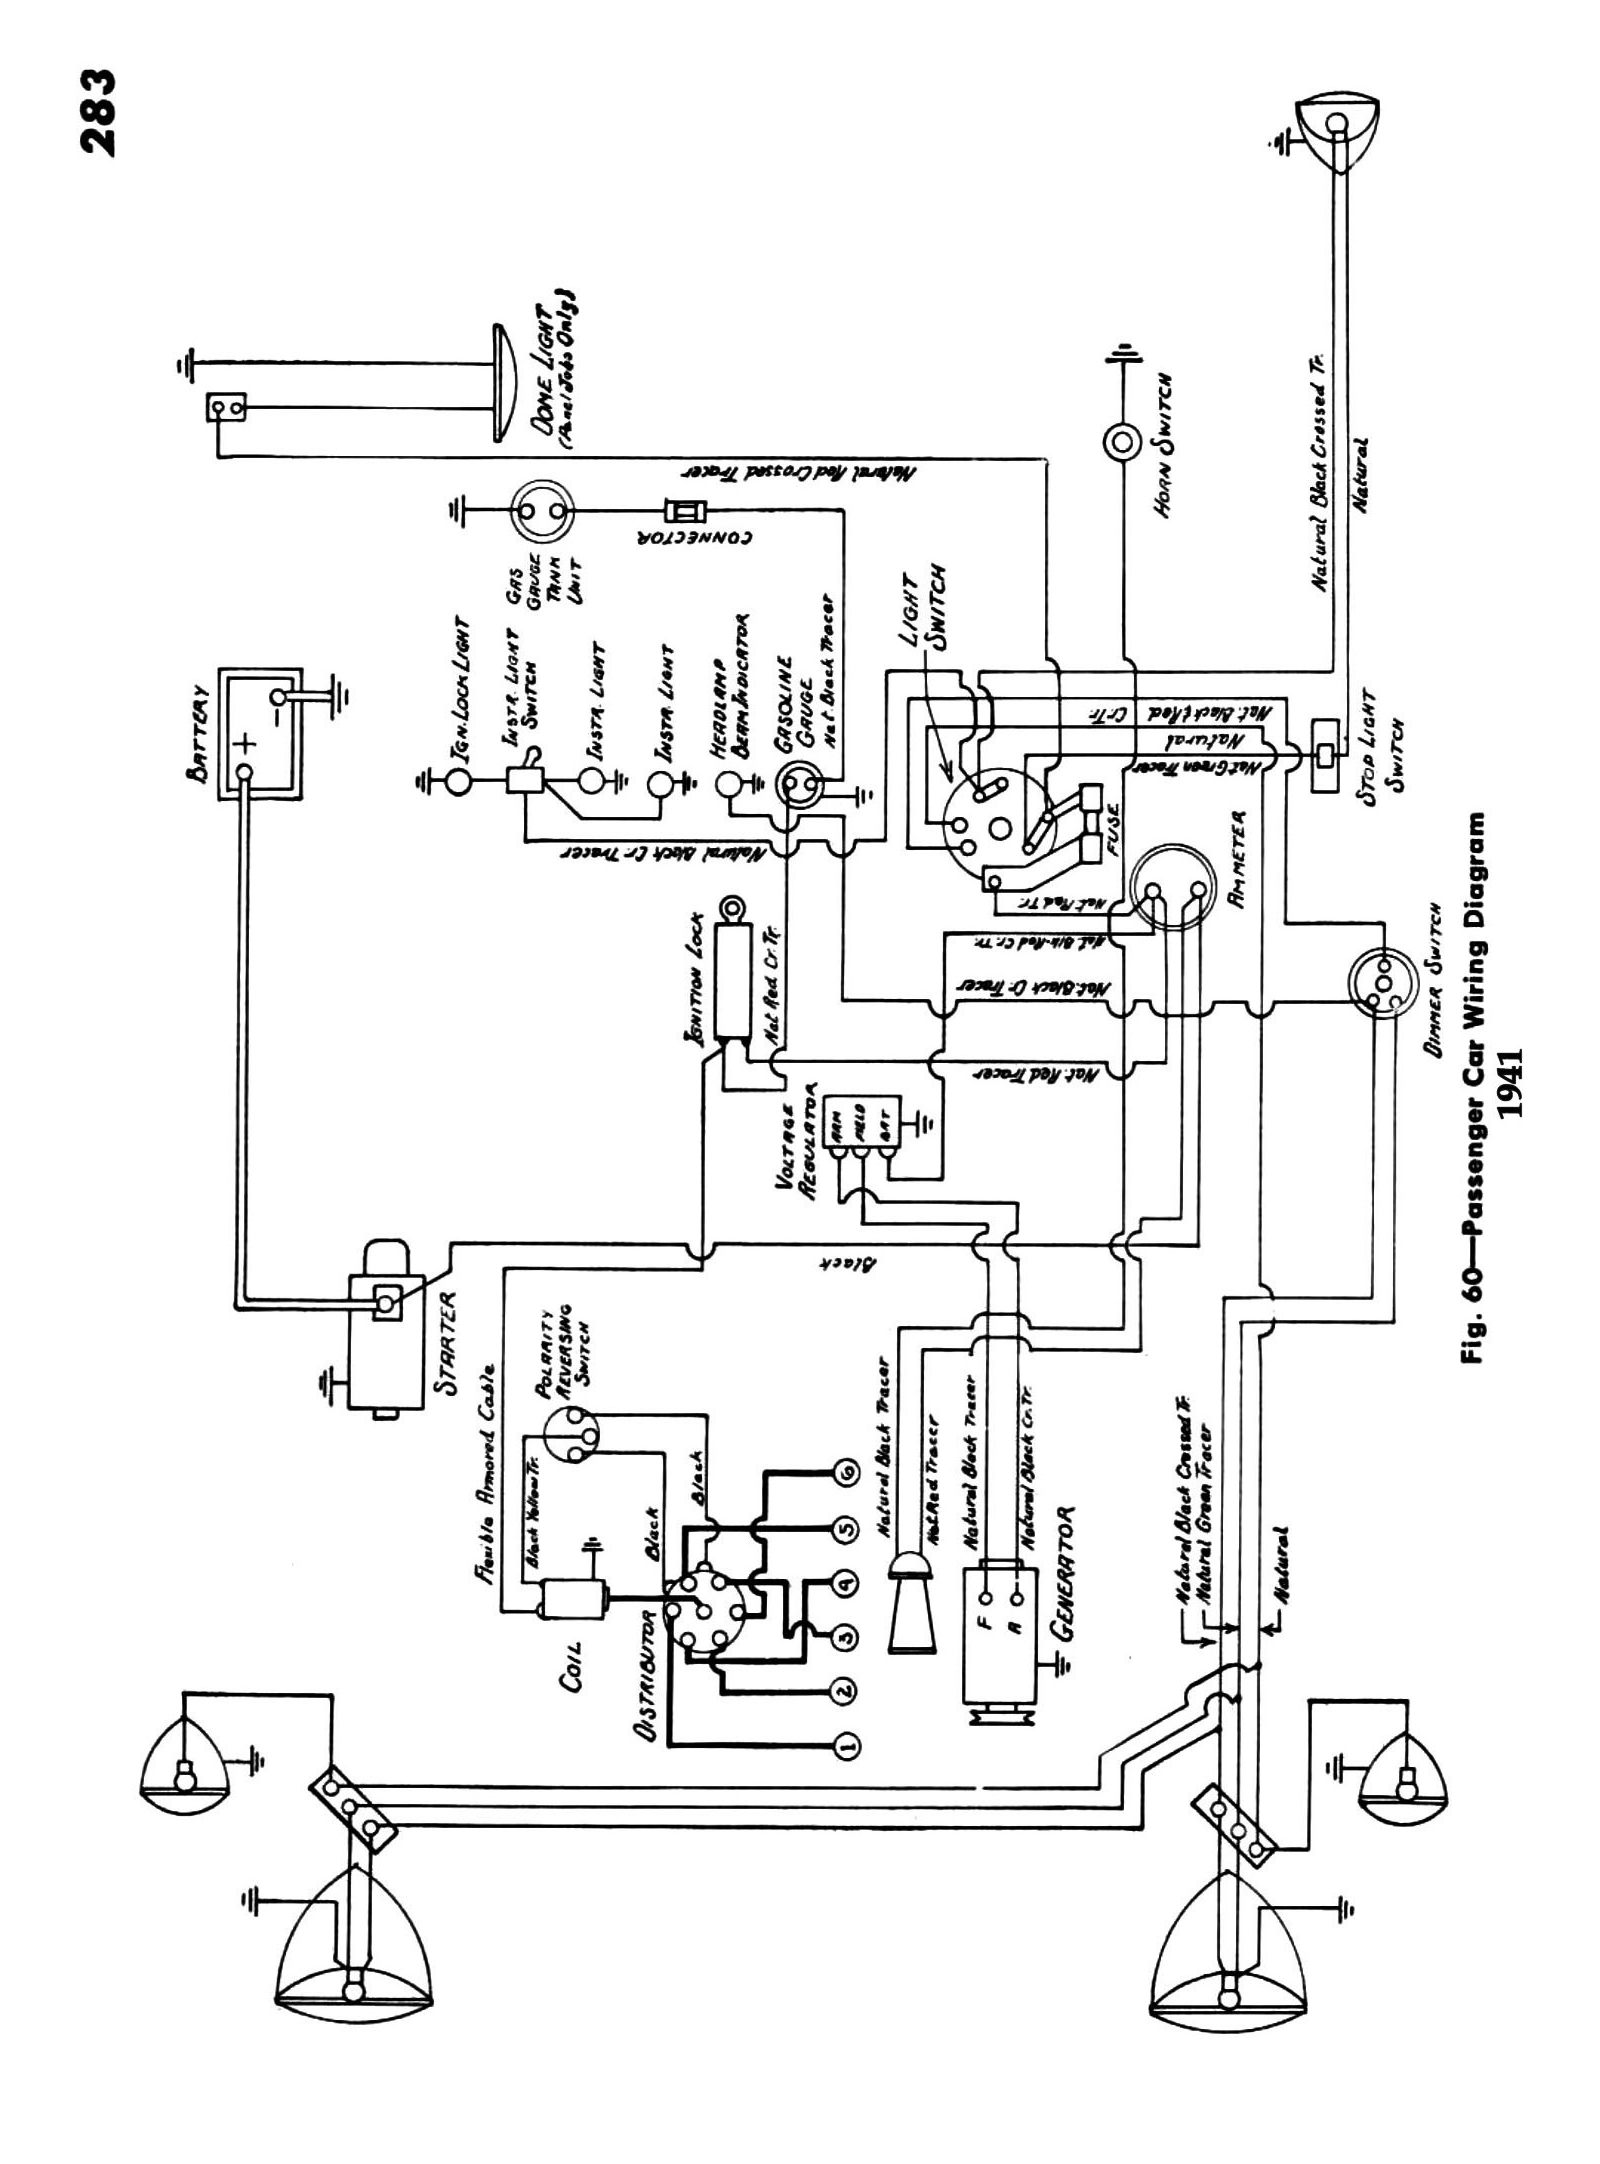 41csm283 chevy wiring diagrams wiring schematic for at gsmx.co